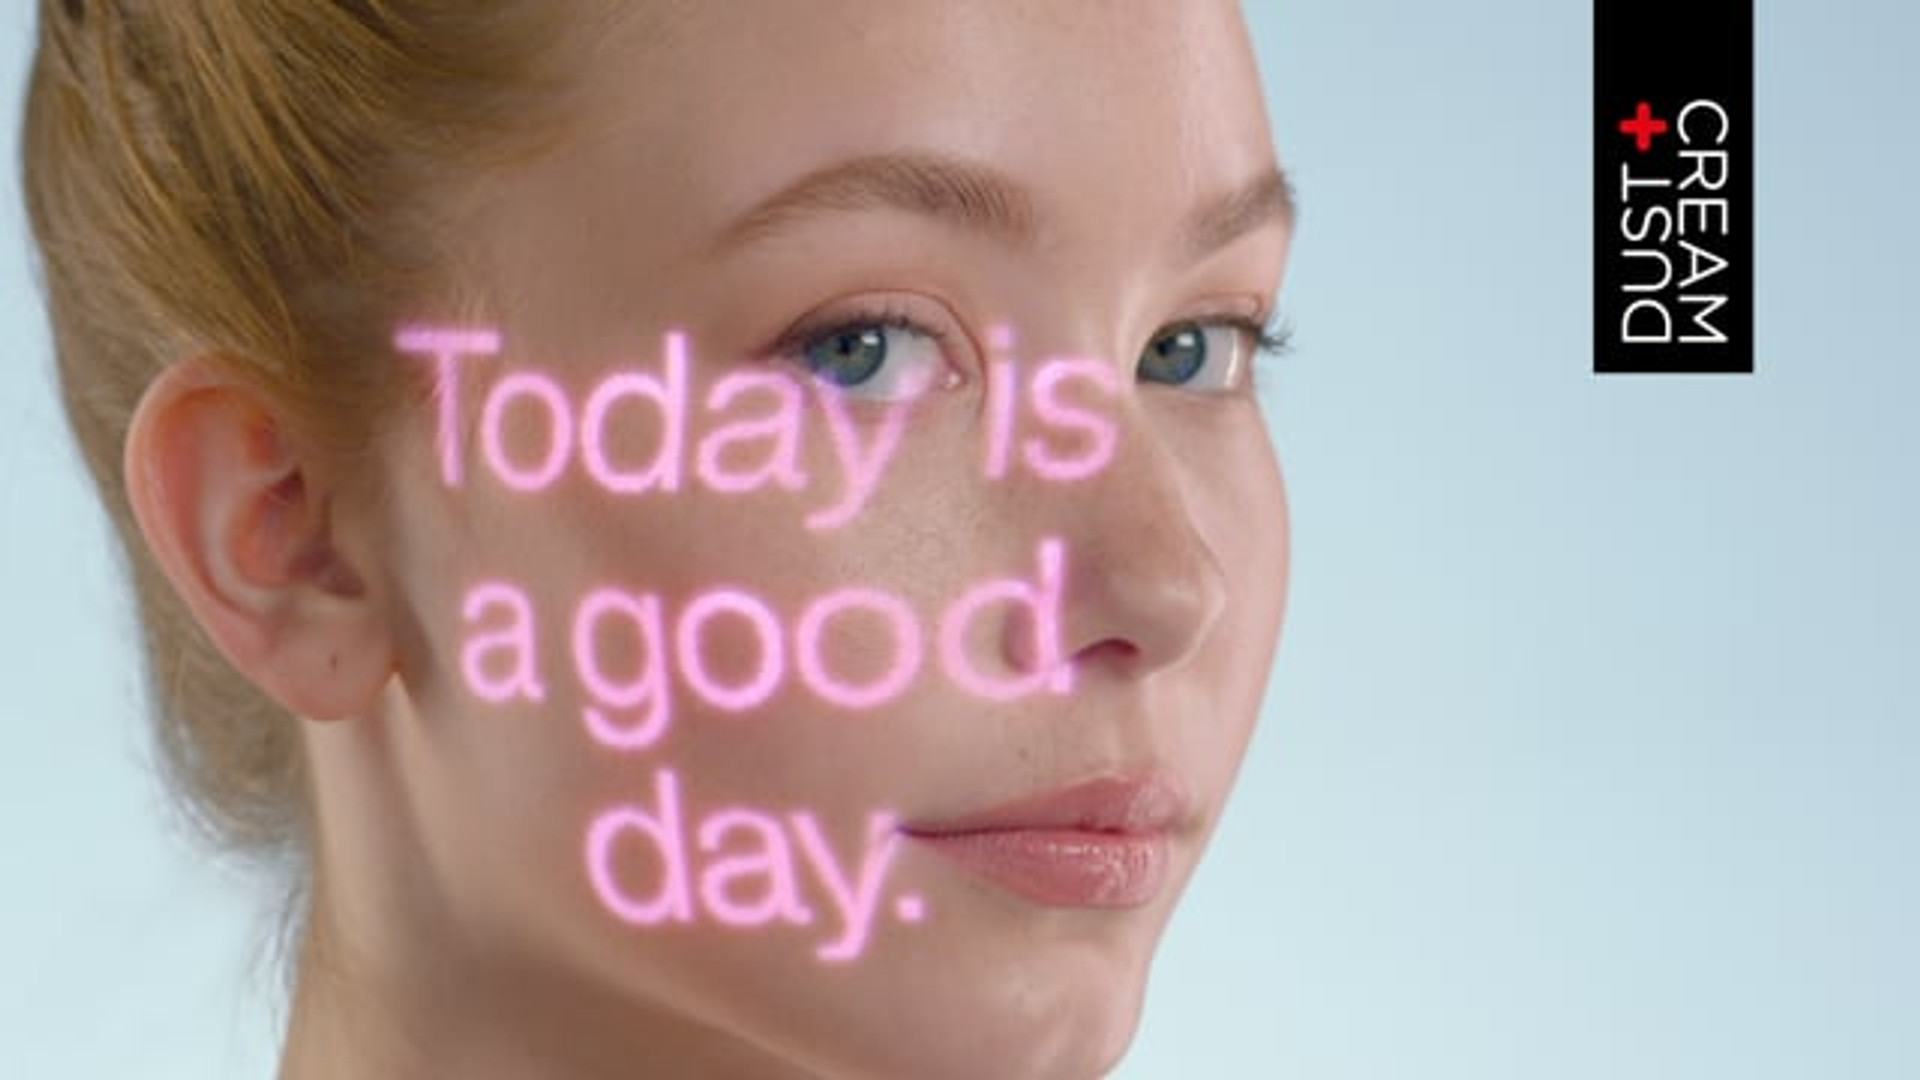 DUST + CREAM TVC - TODAY IS A GOOD DAY